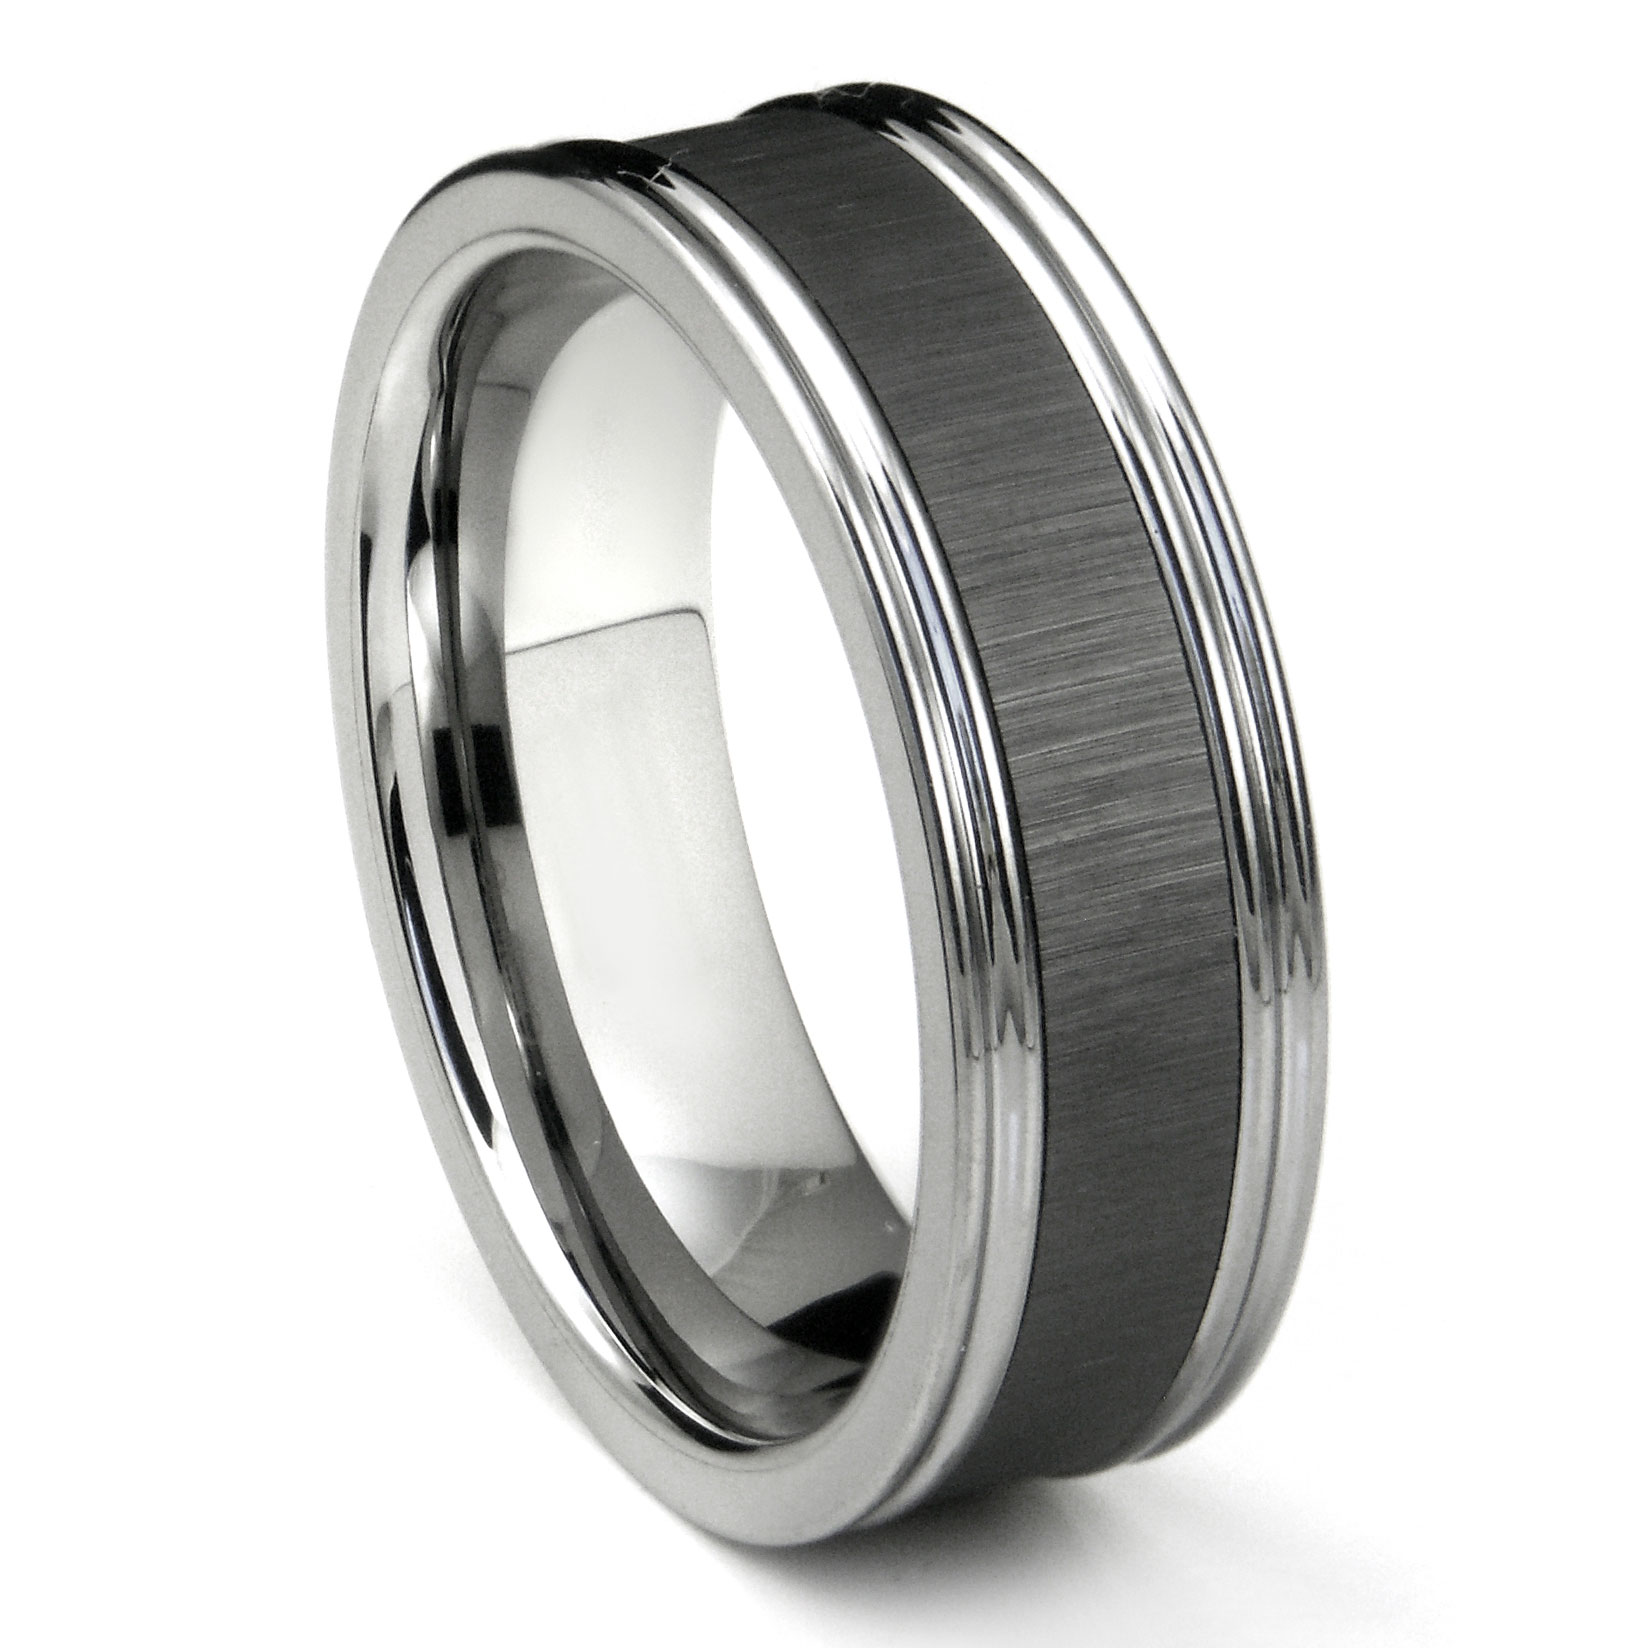 band black ring stripe products ceramic center barrel made tech mens of out wedding wine high with koa northernroyal rings wood